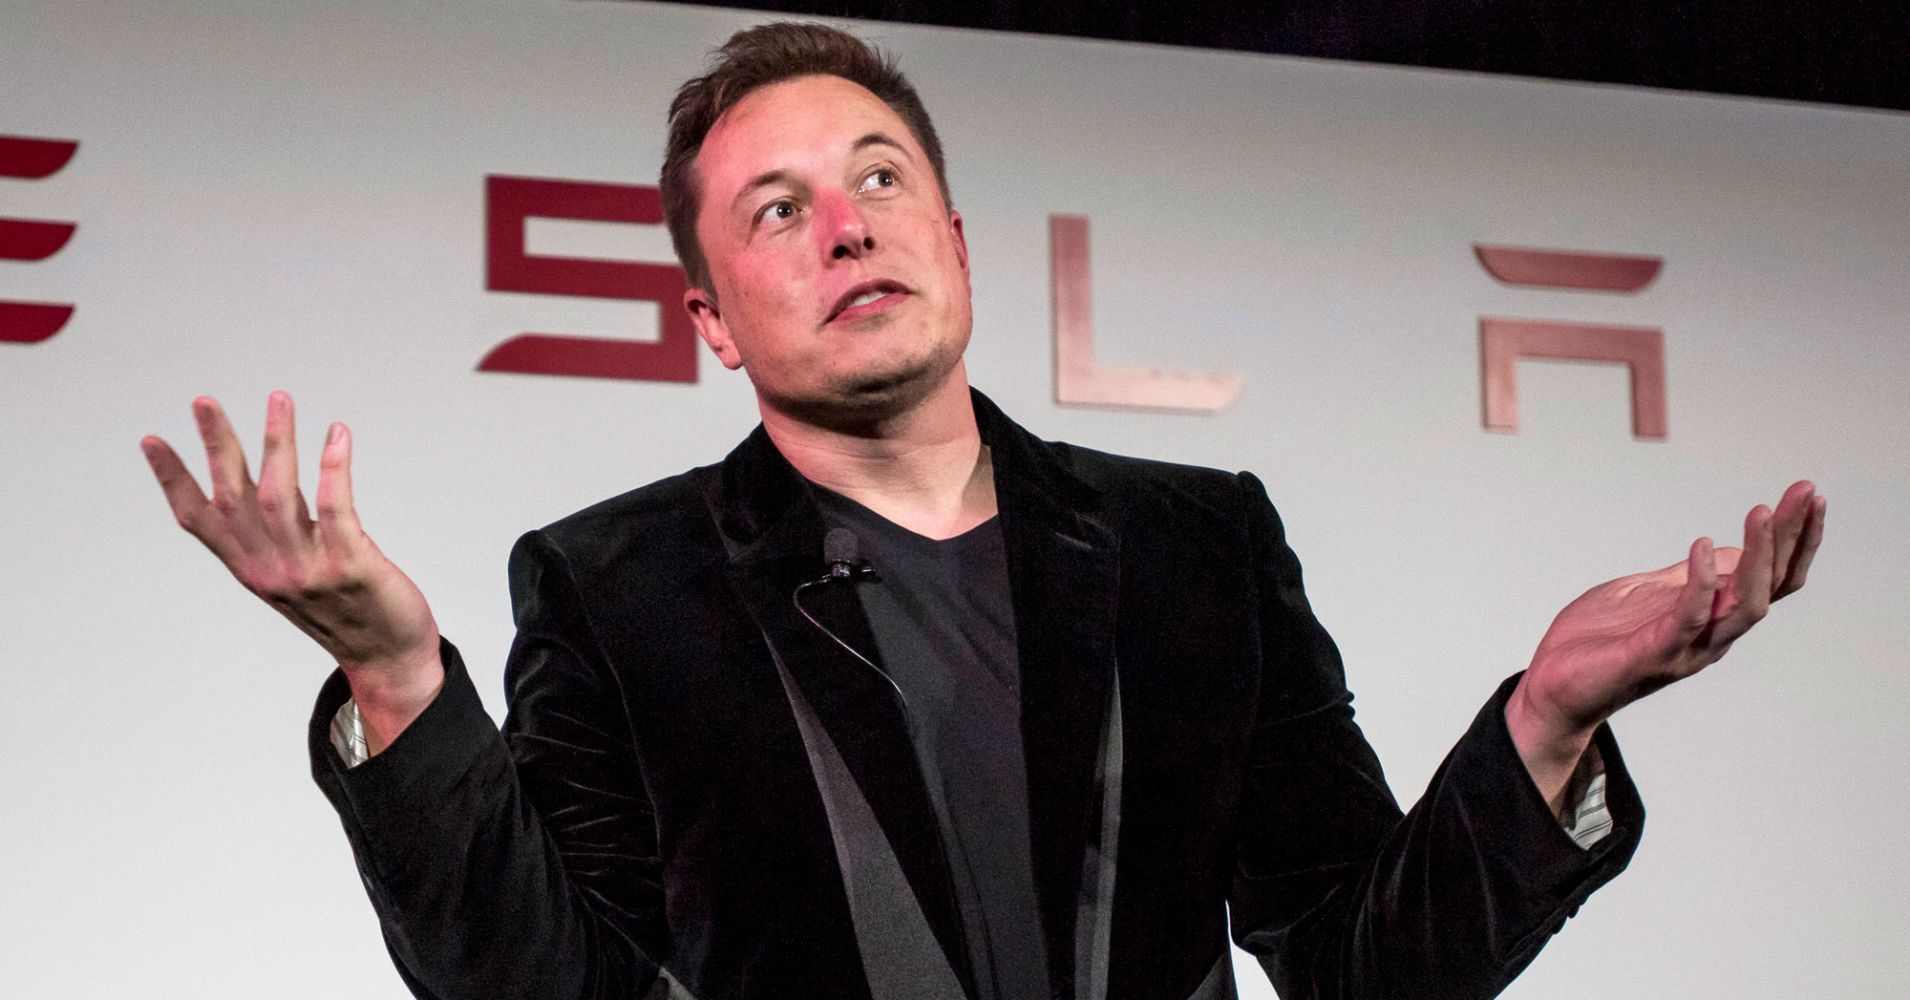 Elon Musk Rejected SEC Settlement At Last Minute